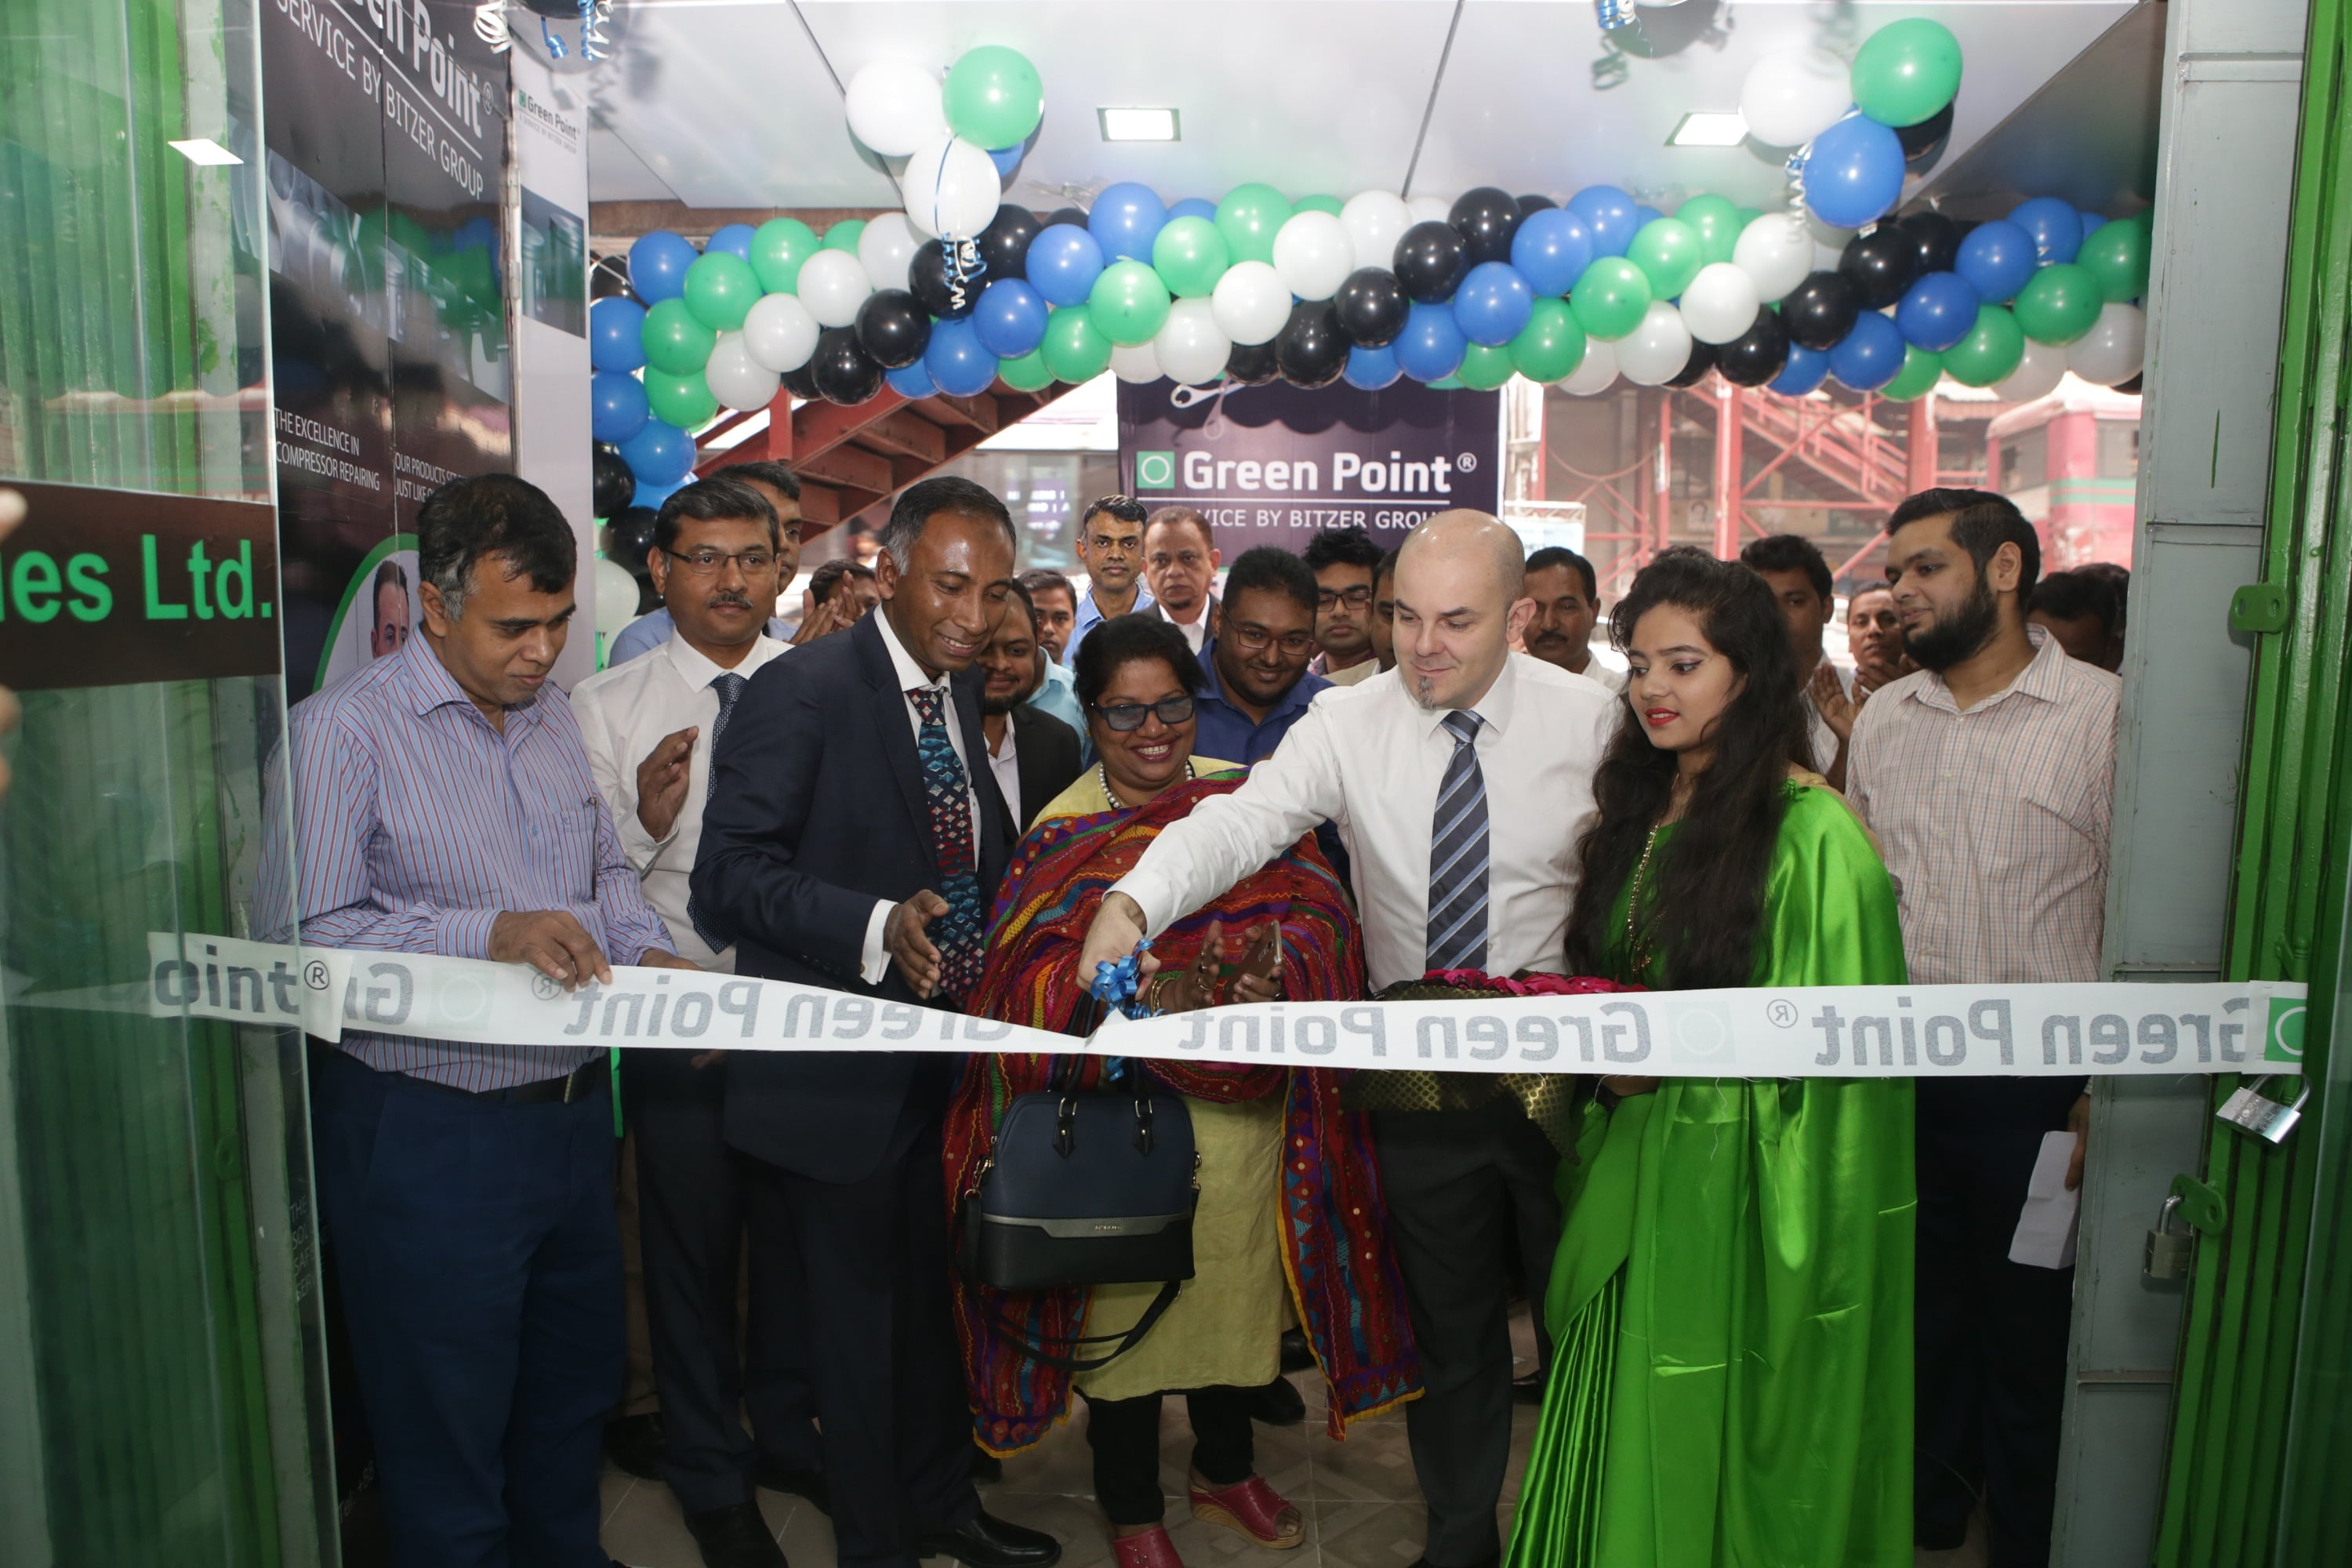 Green Point opens its doors in Dhaka, Bangladesh